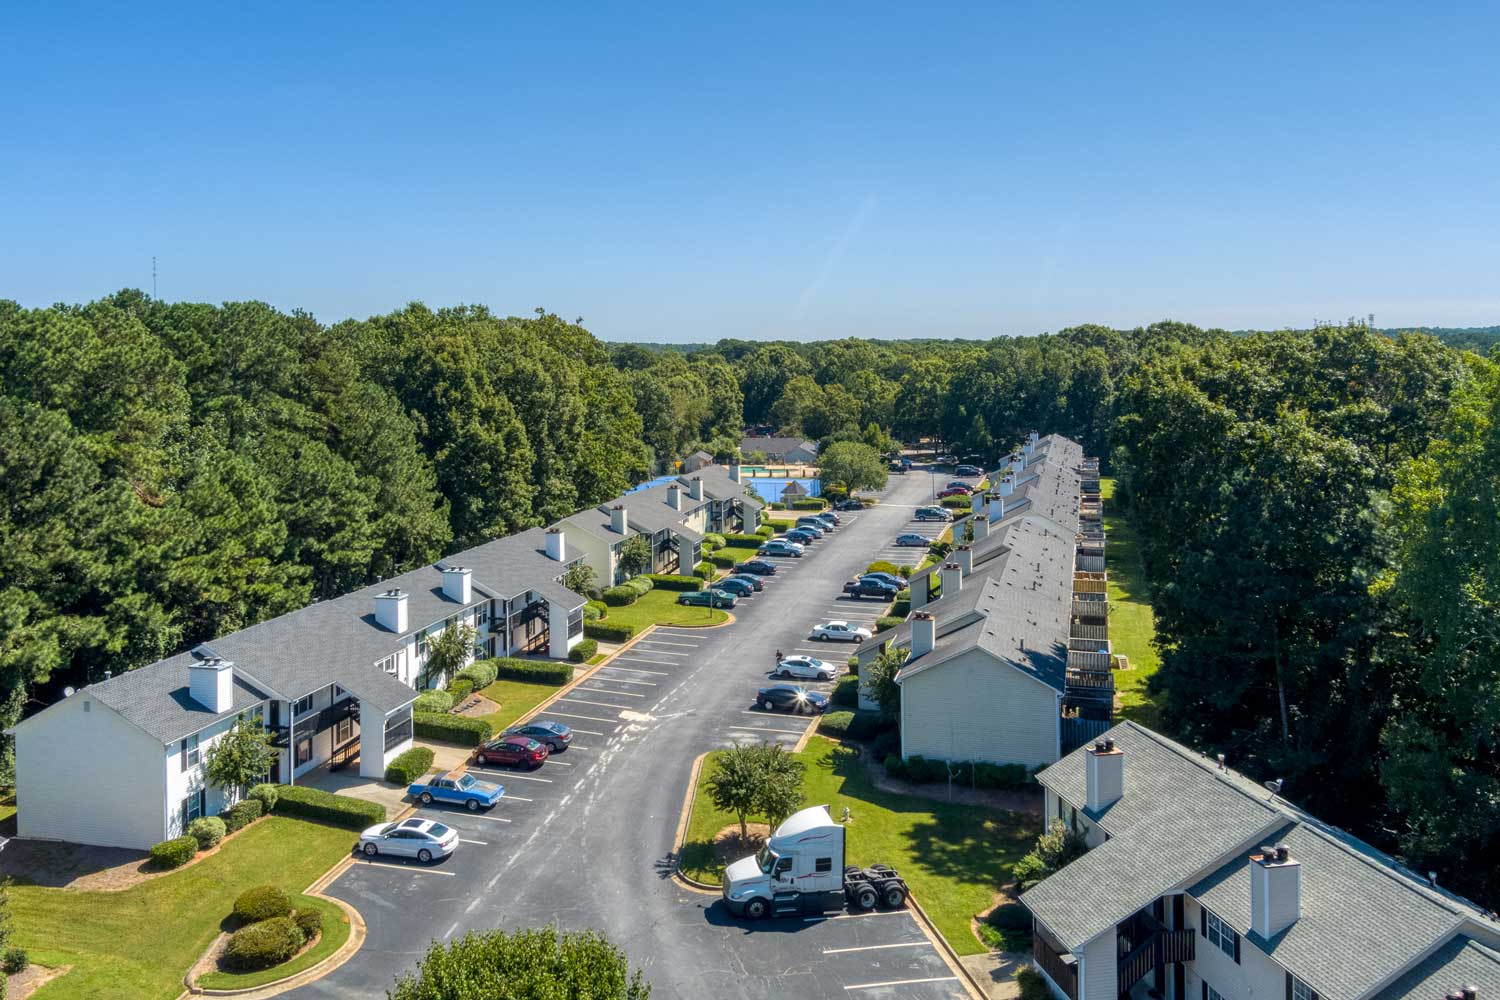 Apartments for Lease at Tall Oaks Apartments and Villas in Conyers, GA